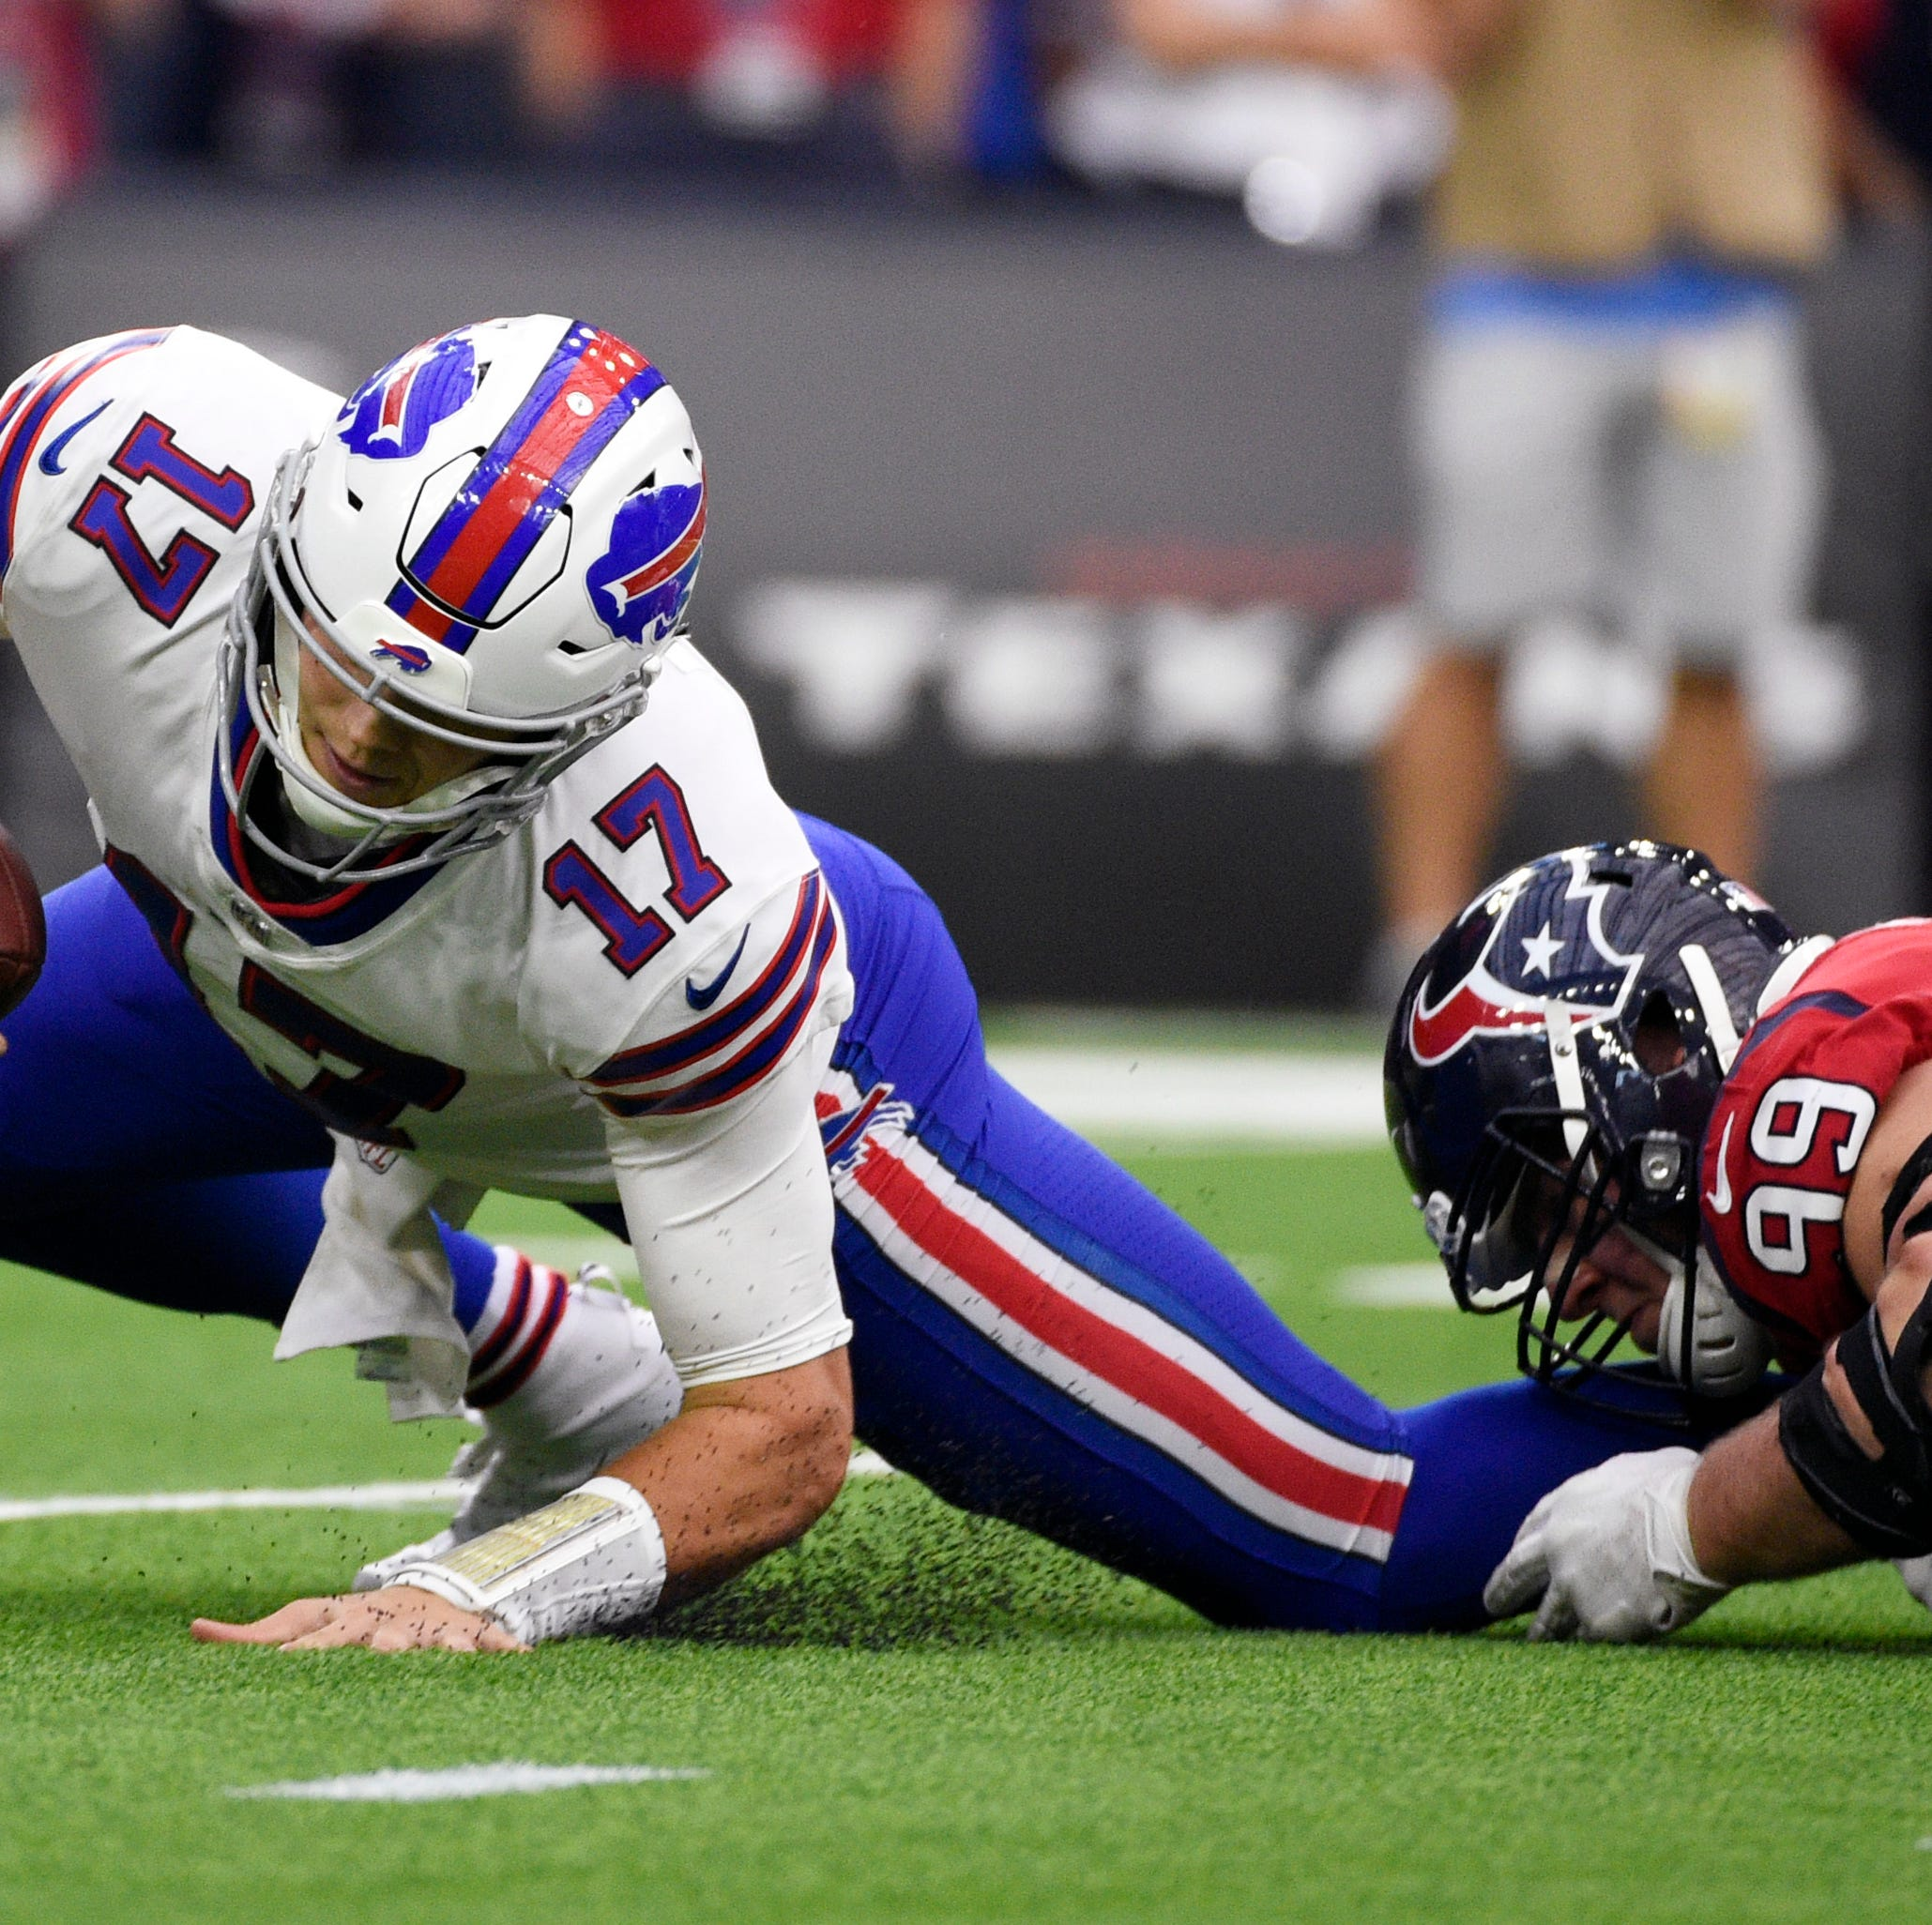 Josh Allen injures elbow and Buffalo turns to Nathan Peterman, who throws pick-six in loss